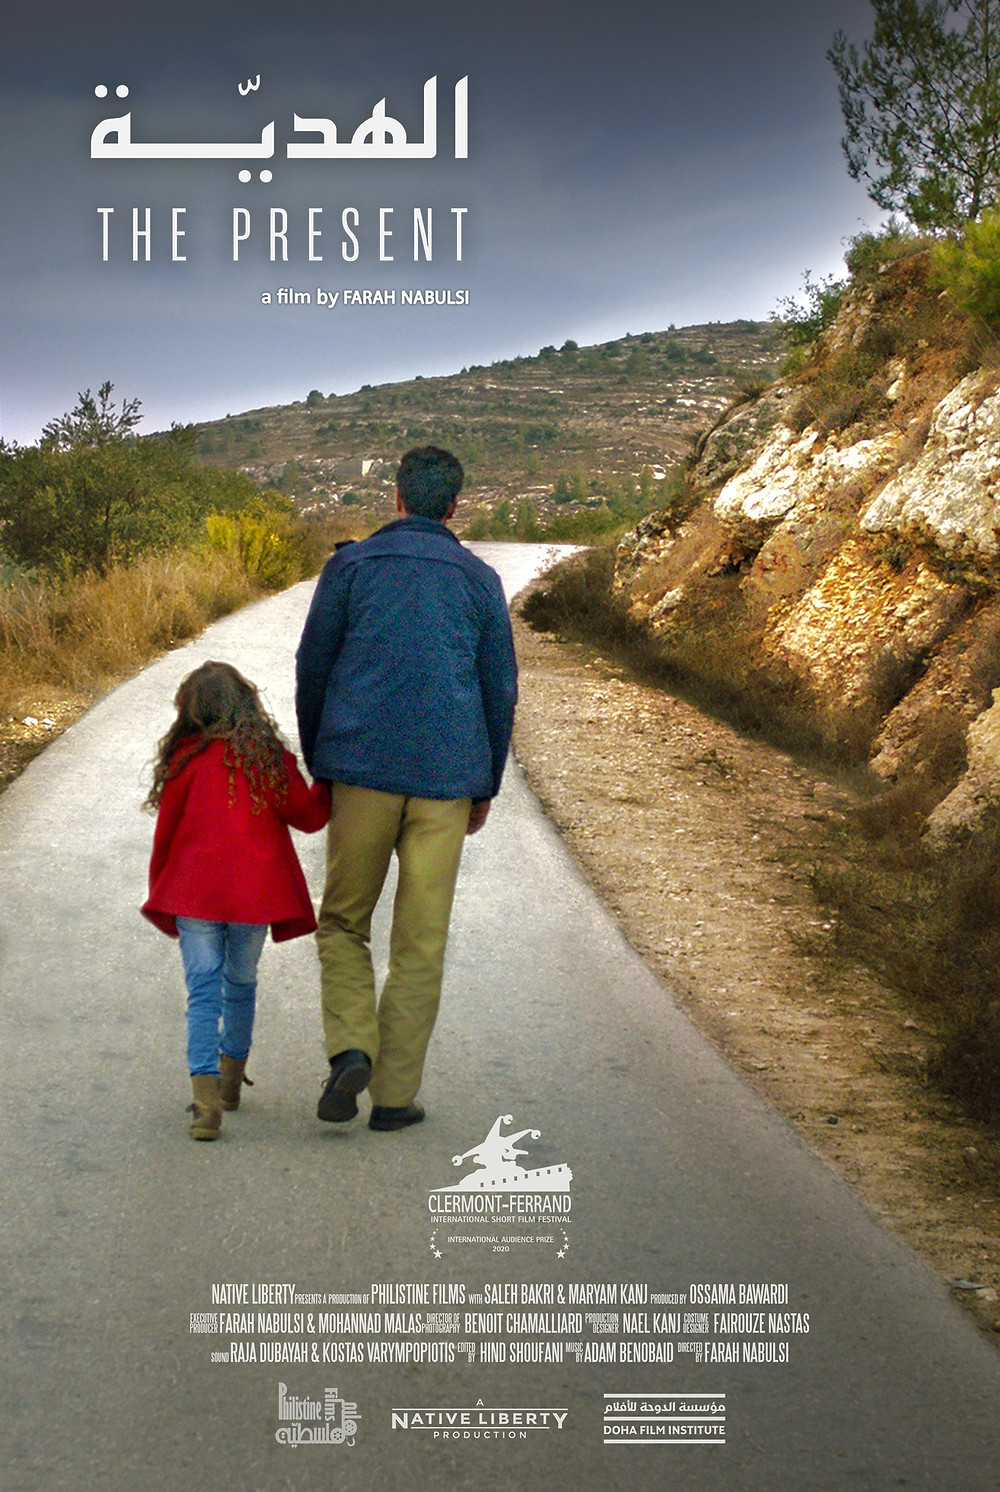 Yusef and Yasmine walking on the road.